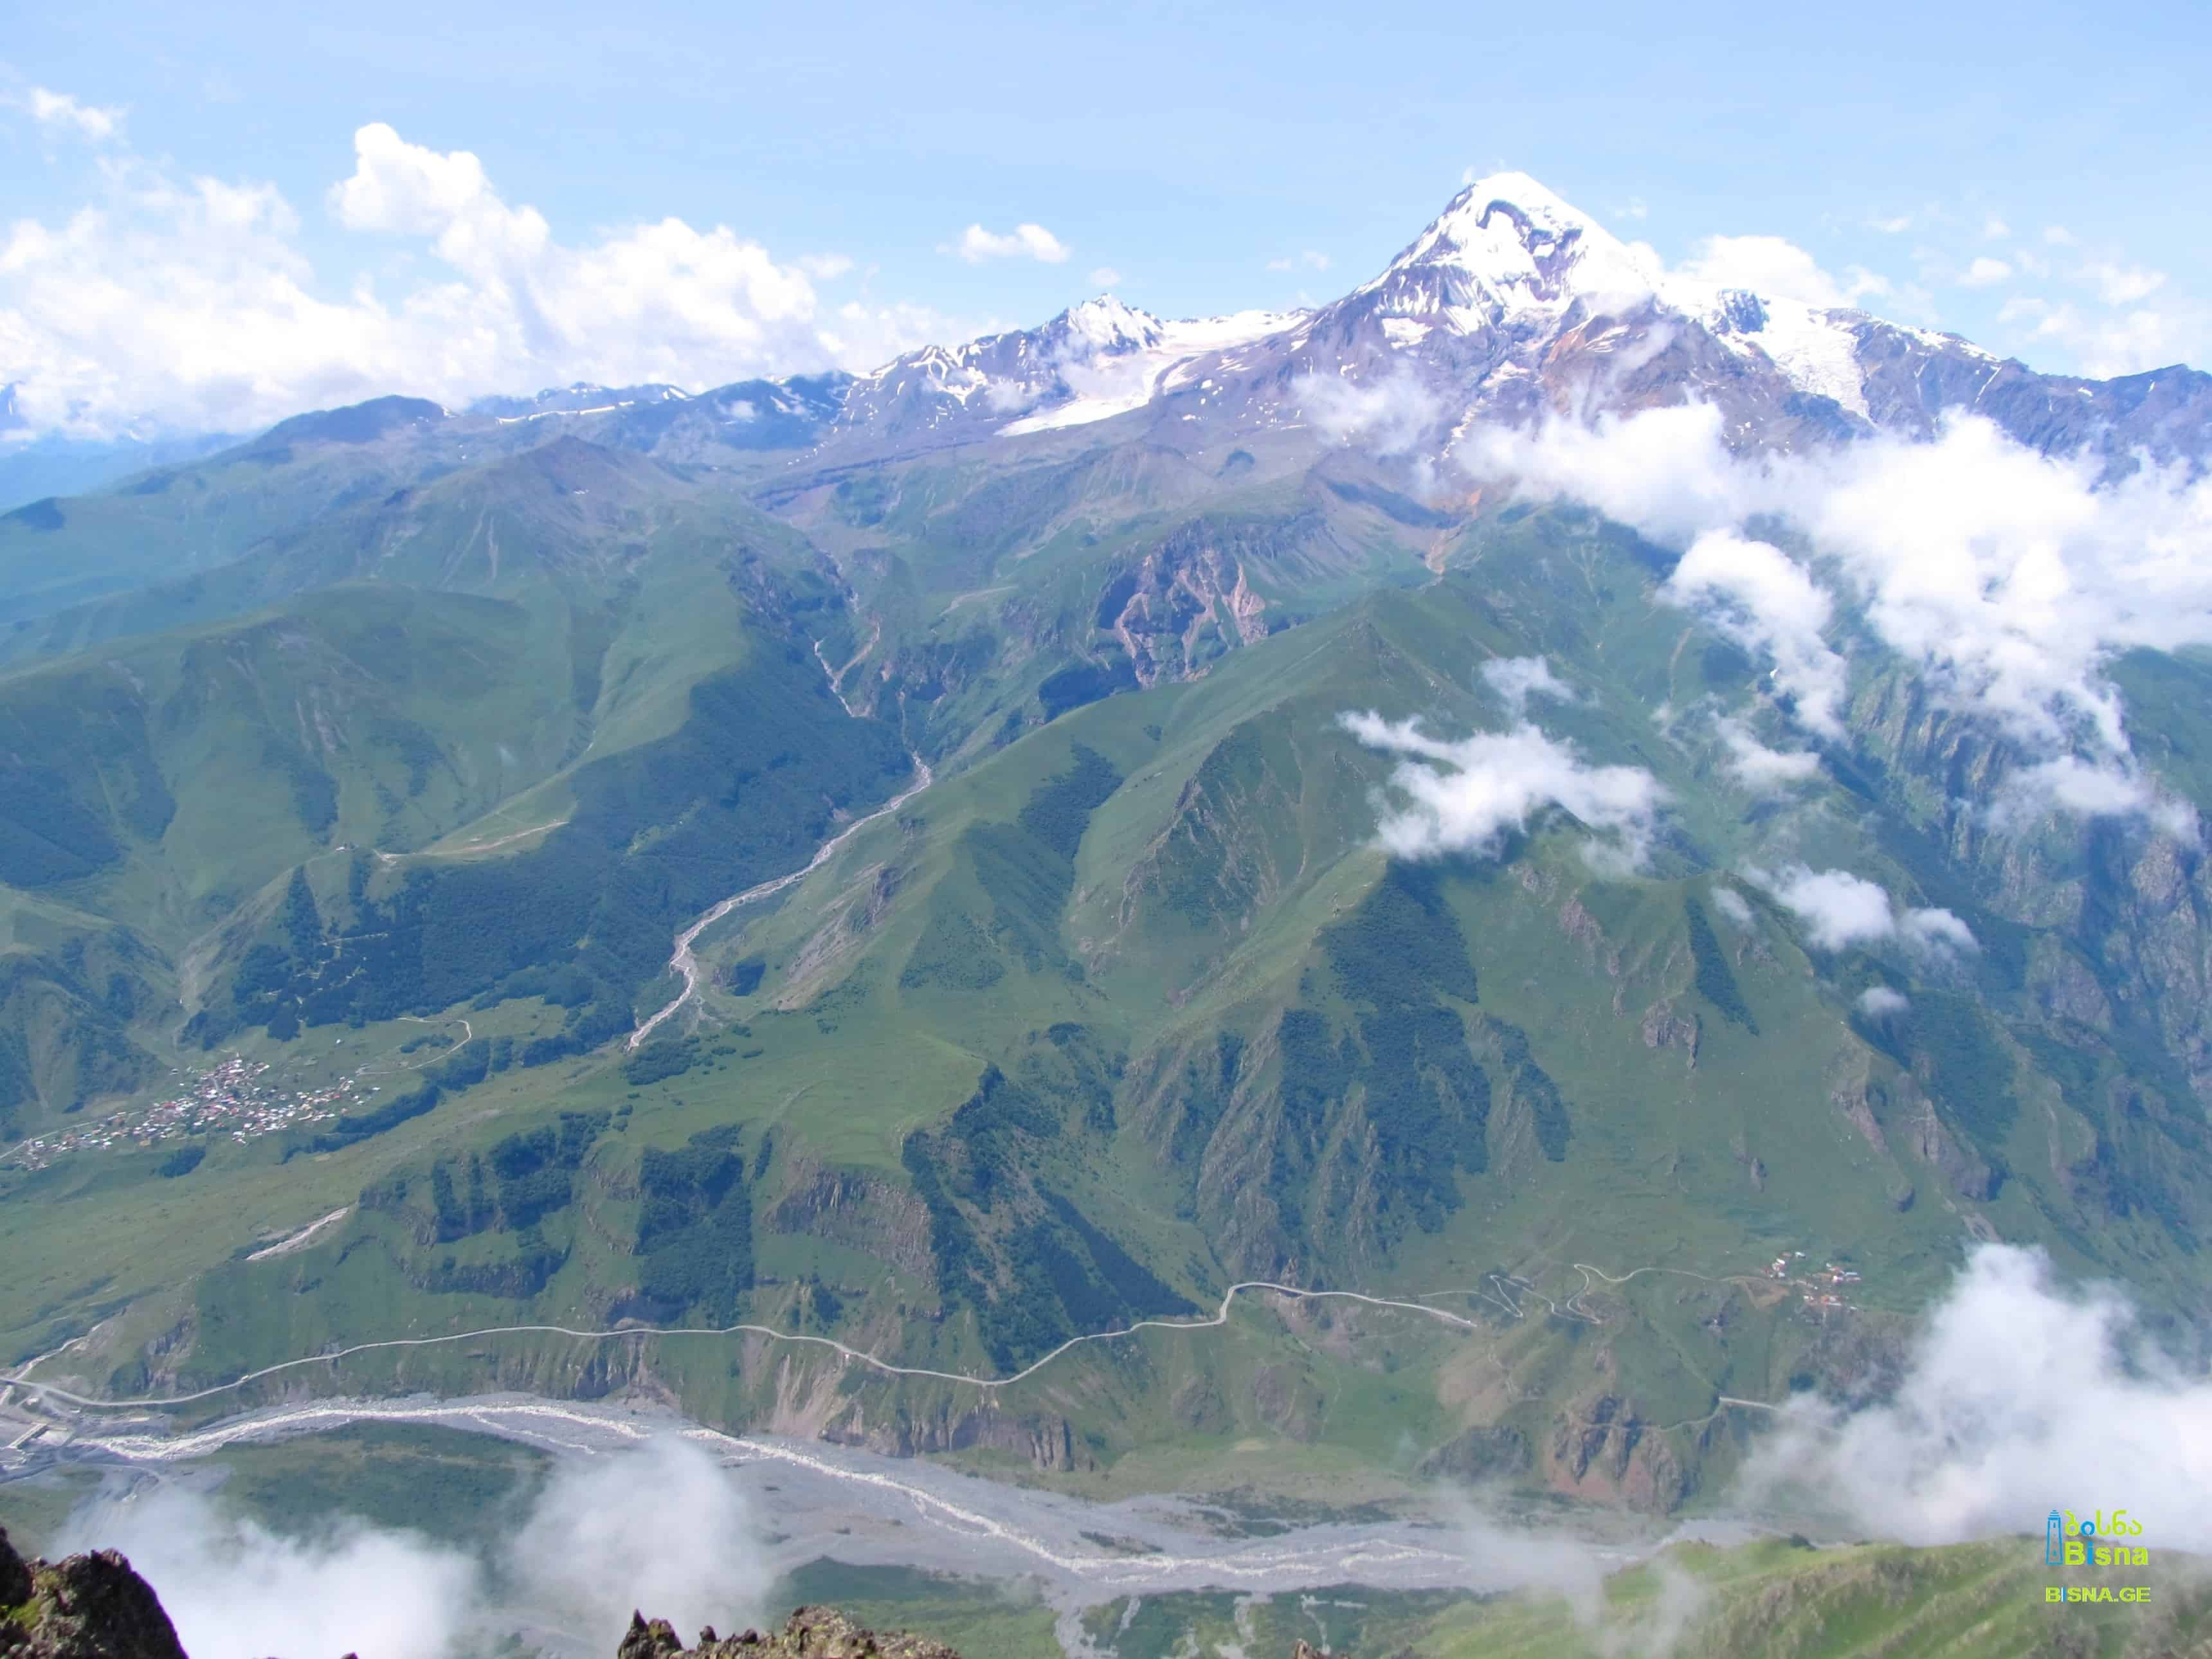 View on Mt. Kazbek, Holy Trinity Church of Gergeti and the begining of Dariali Valley from Khuro Range